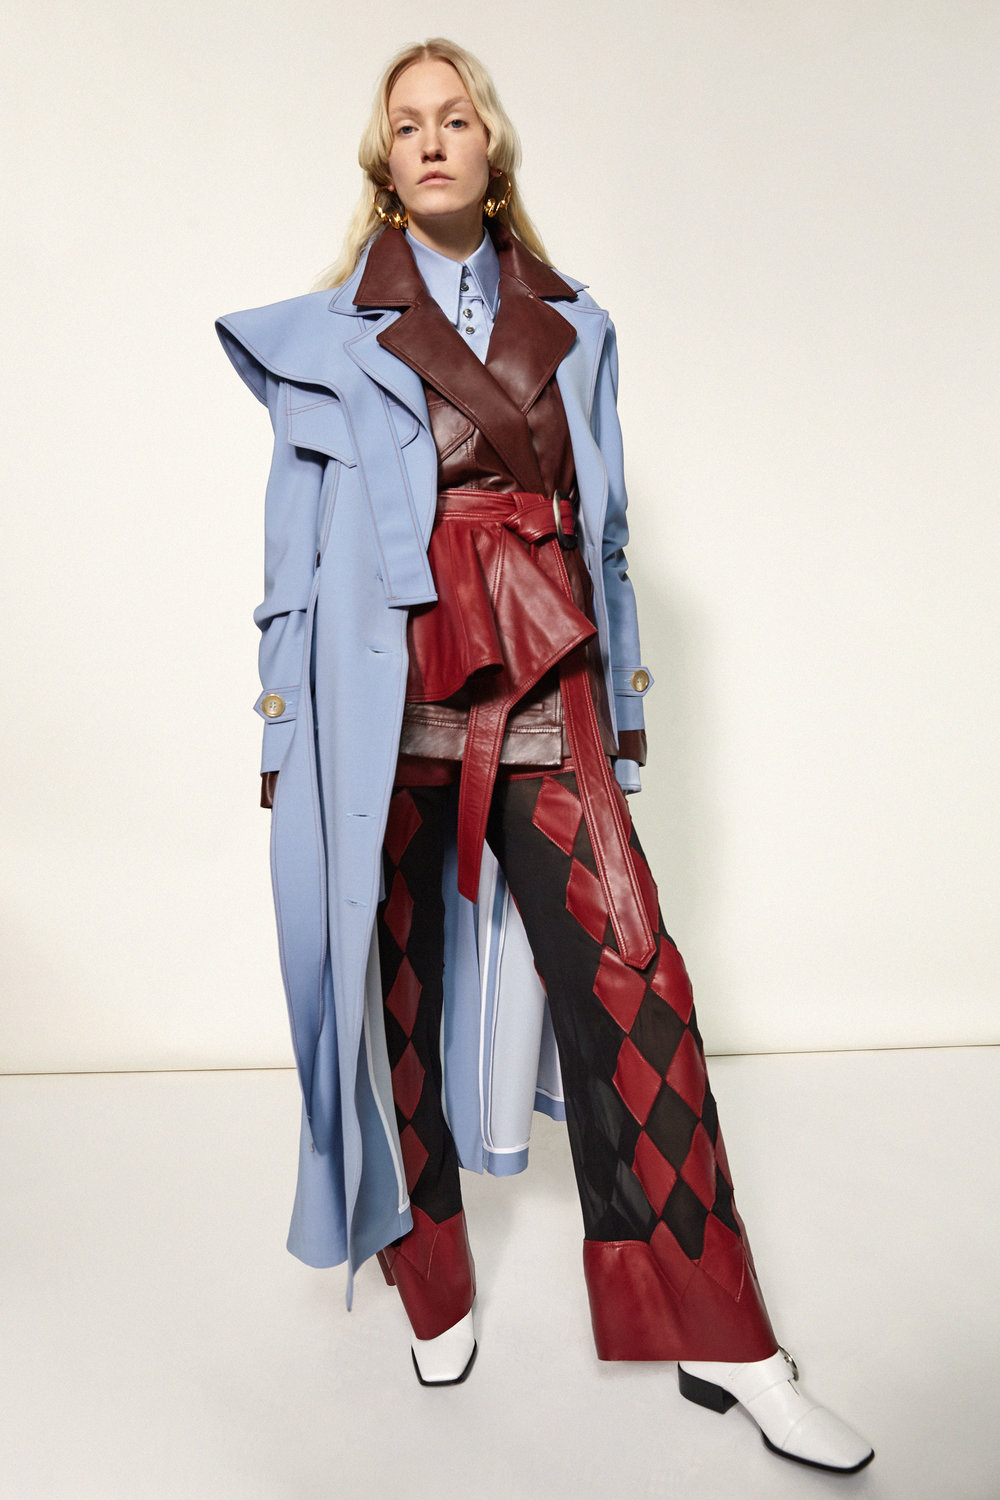 ELLERY_FALL19_PHOTOGRAPHER_KYMELLERY_LOOK10.jpg